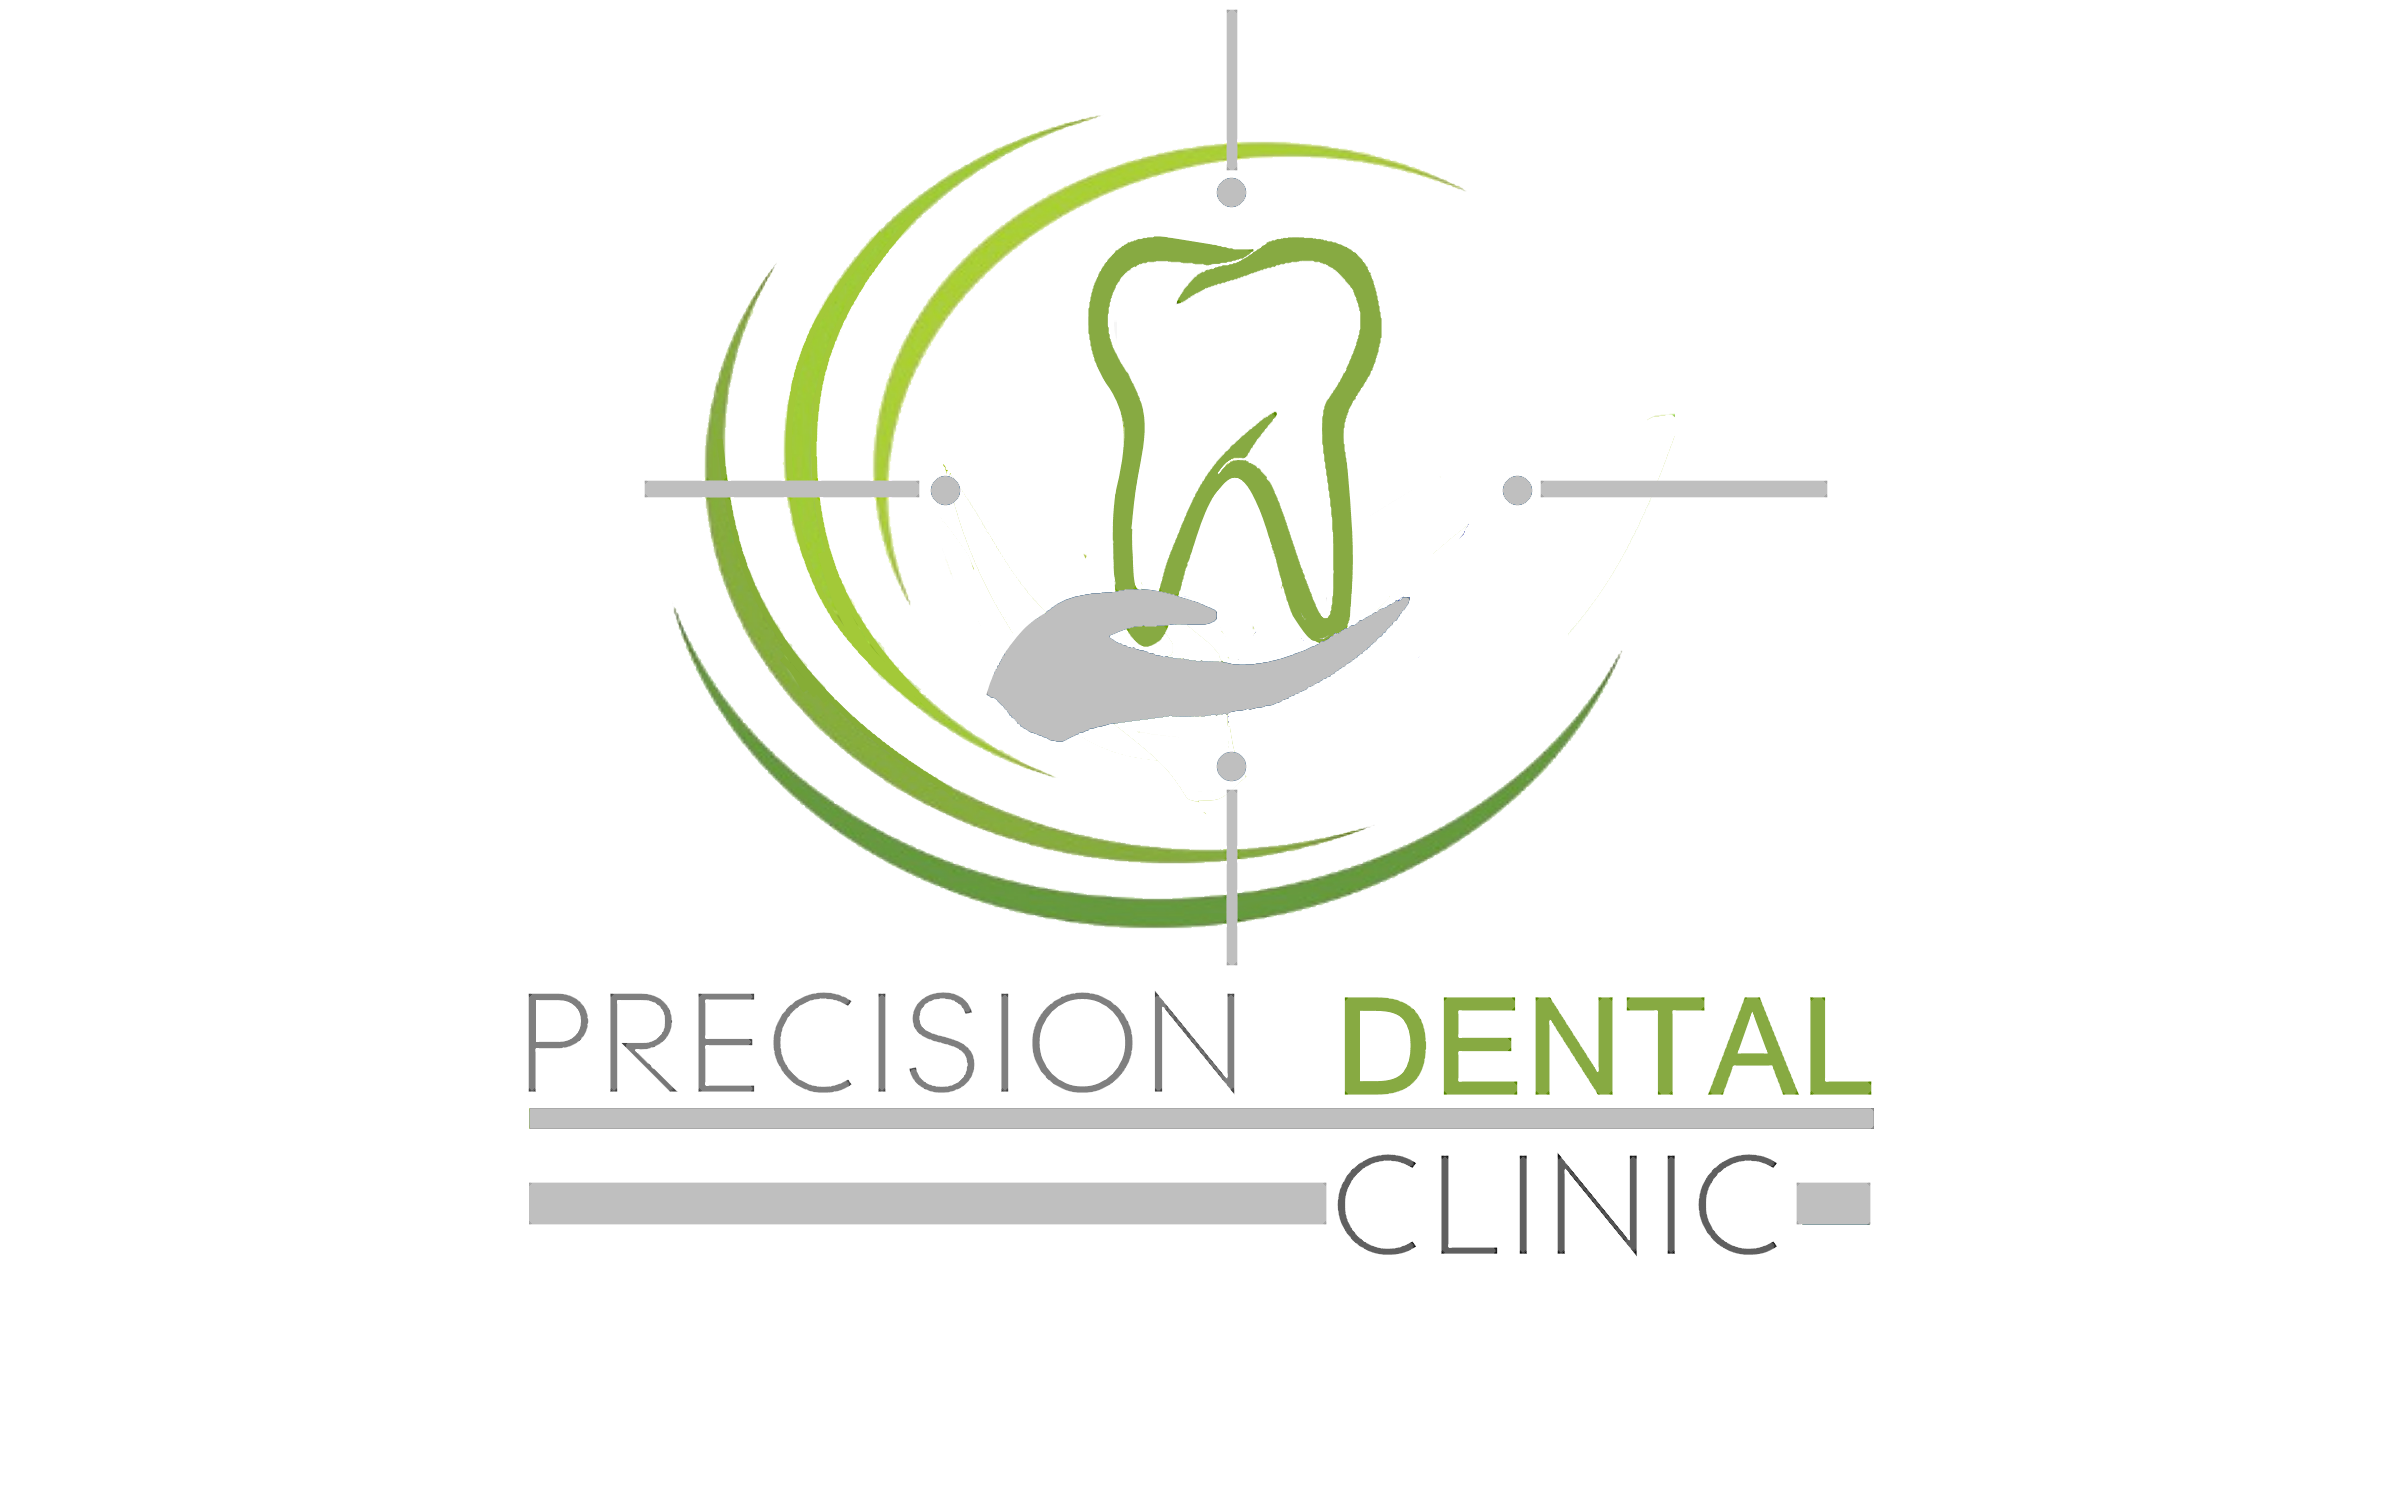 Logo Design by Roberto Bassi - Entry No. 49 in the Logo Design Contest Captivating Logo Design for Precision Dental Clinic.